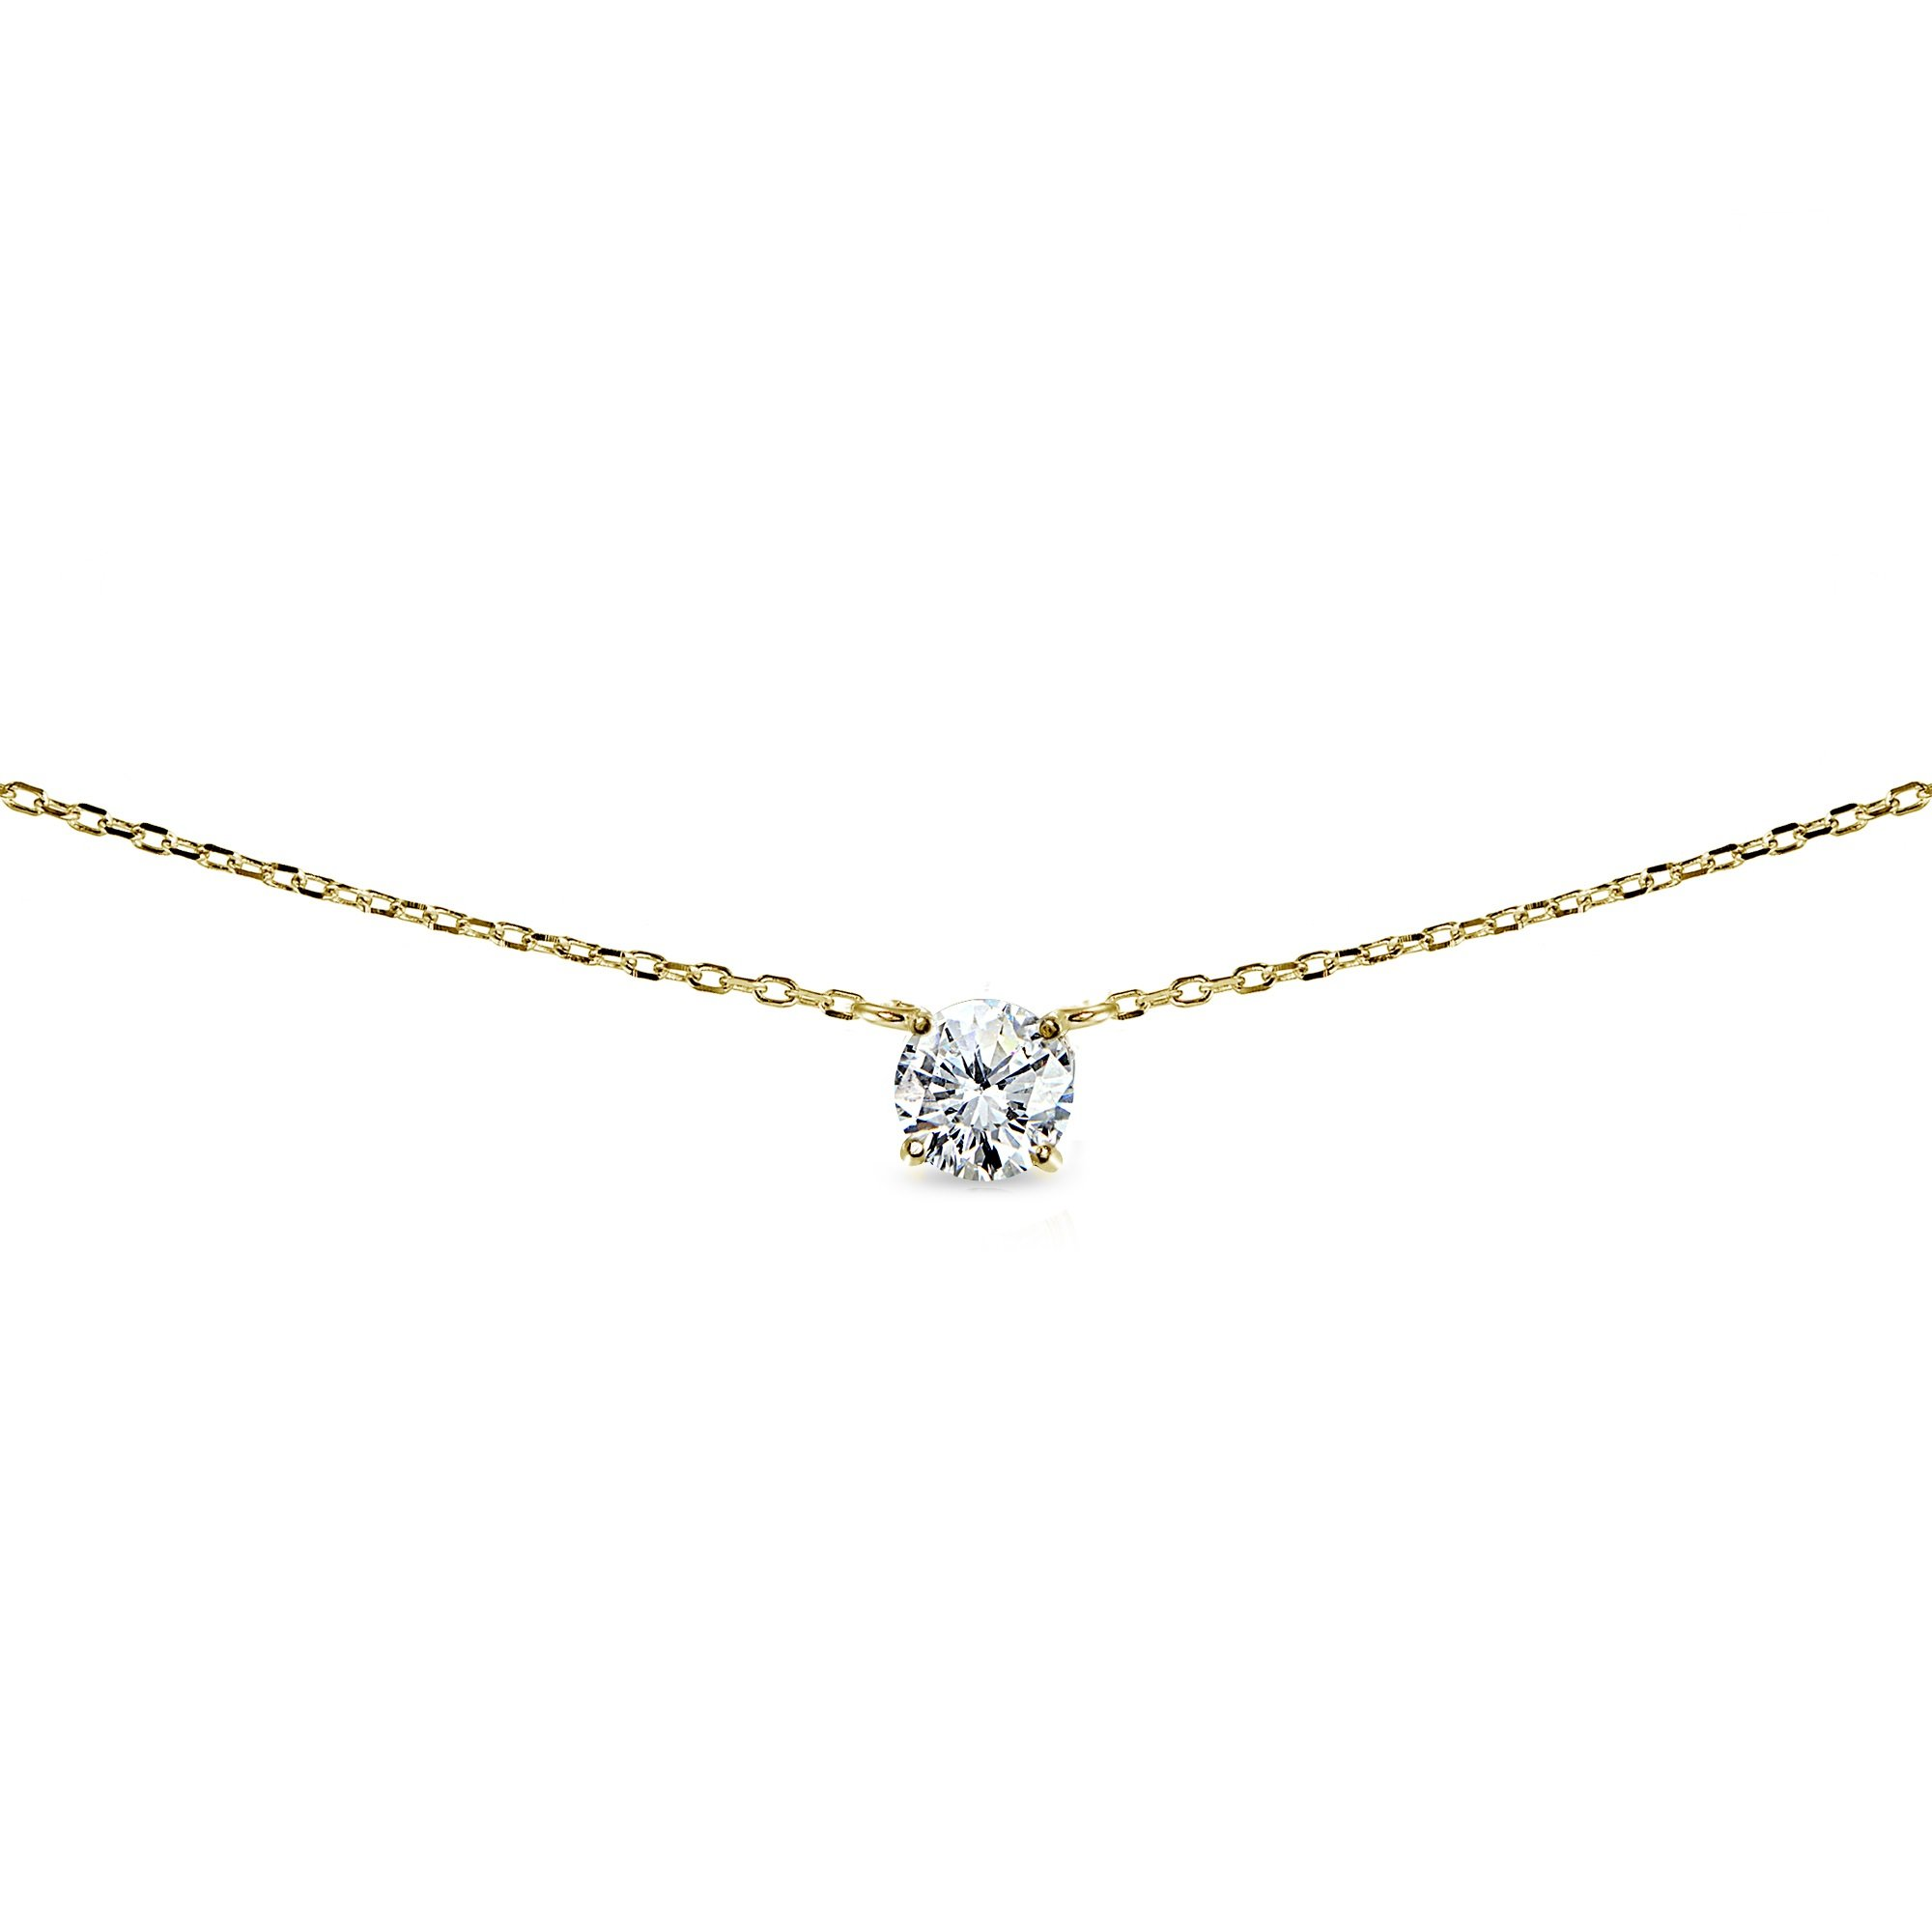 Lovve Yellow Gold Flashed Sterling Sterling Silver Round-Cut Cubic Zirconia Solitaire Choker Necklace